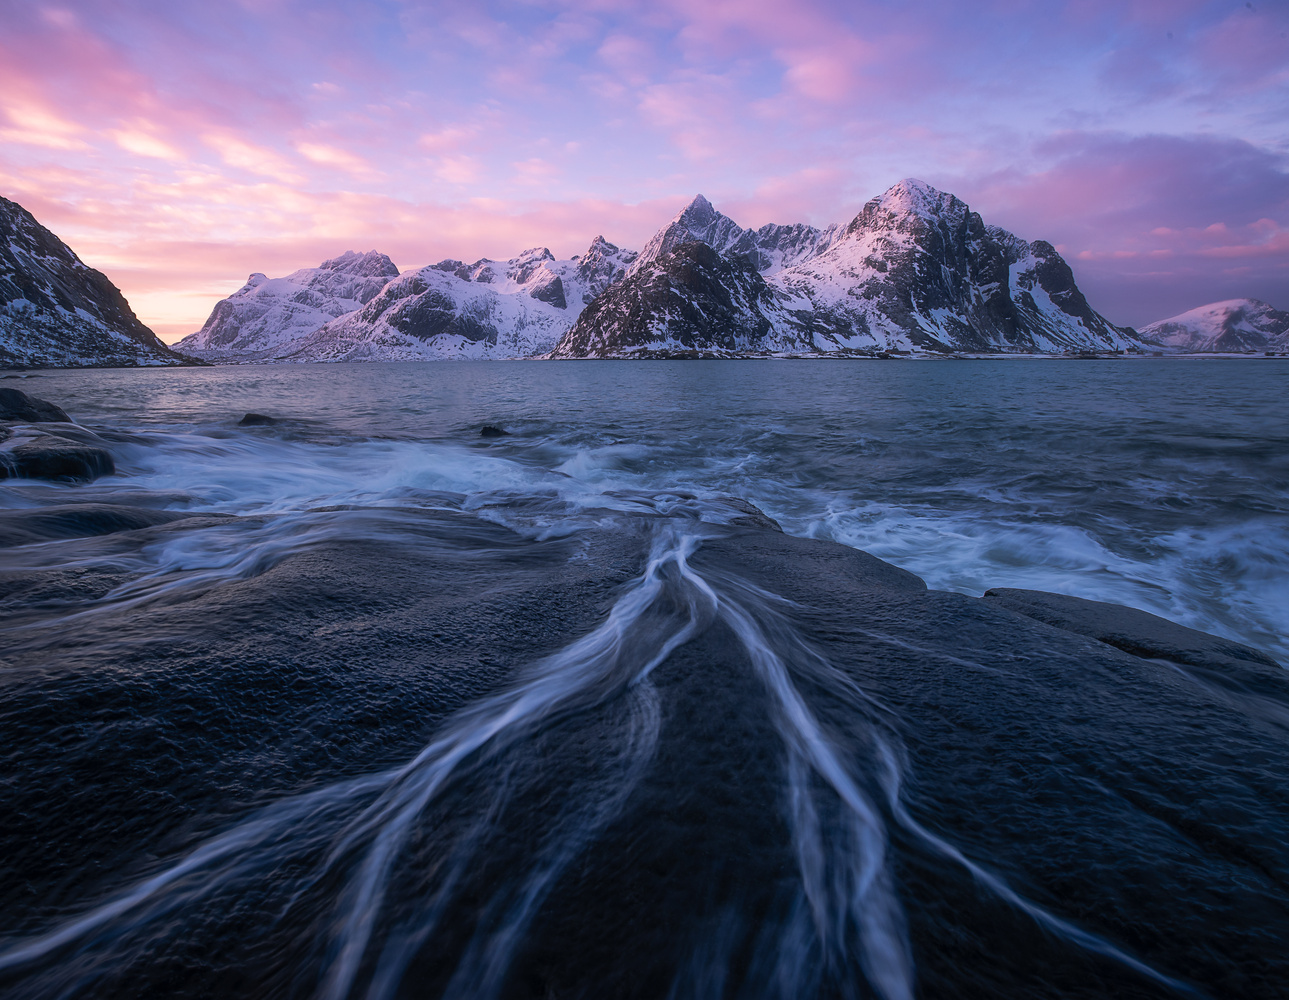 Epic sunrise in amazing Lofoten by Roger Kristiansen